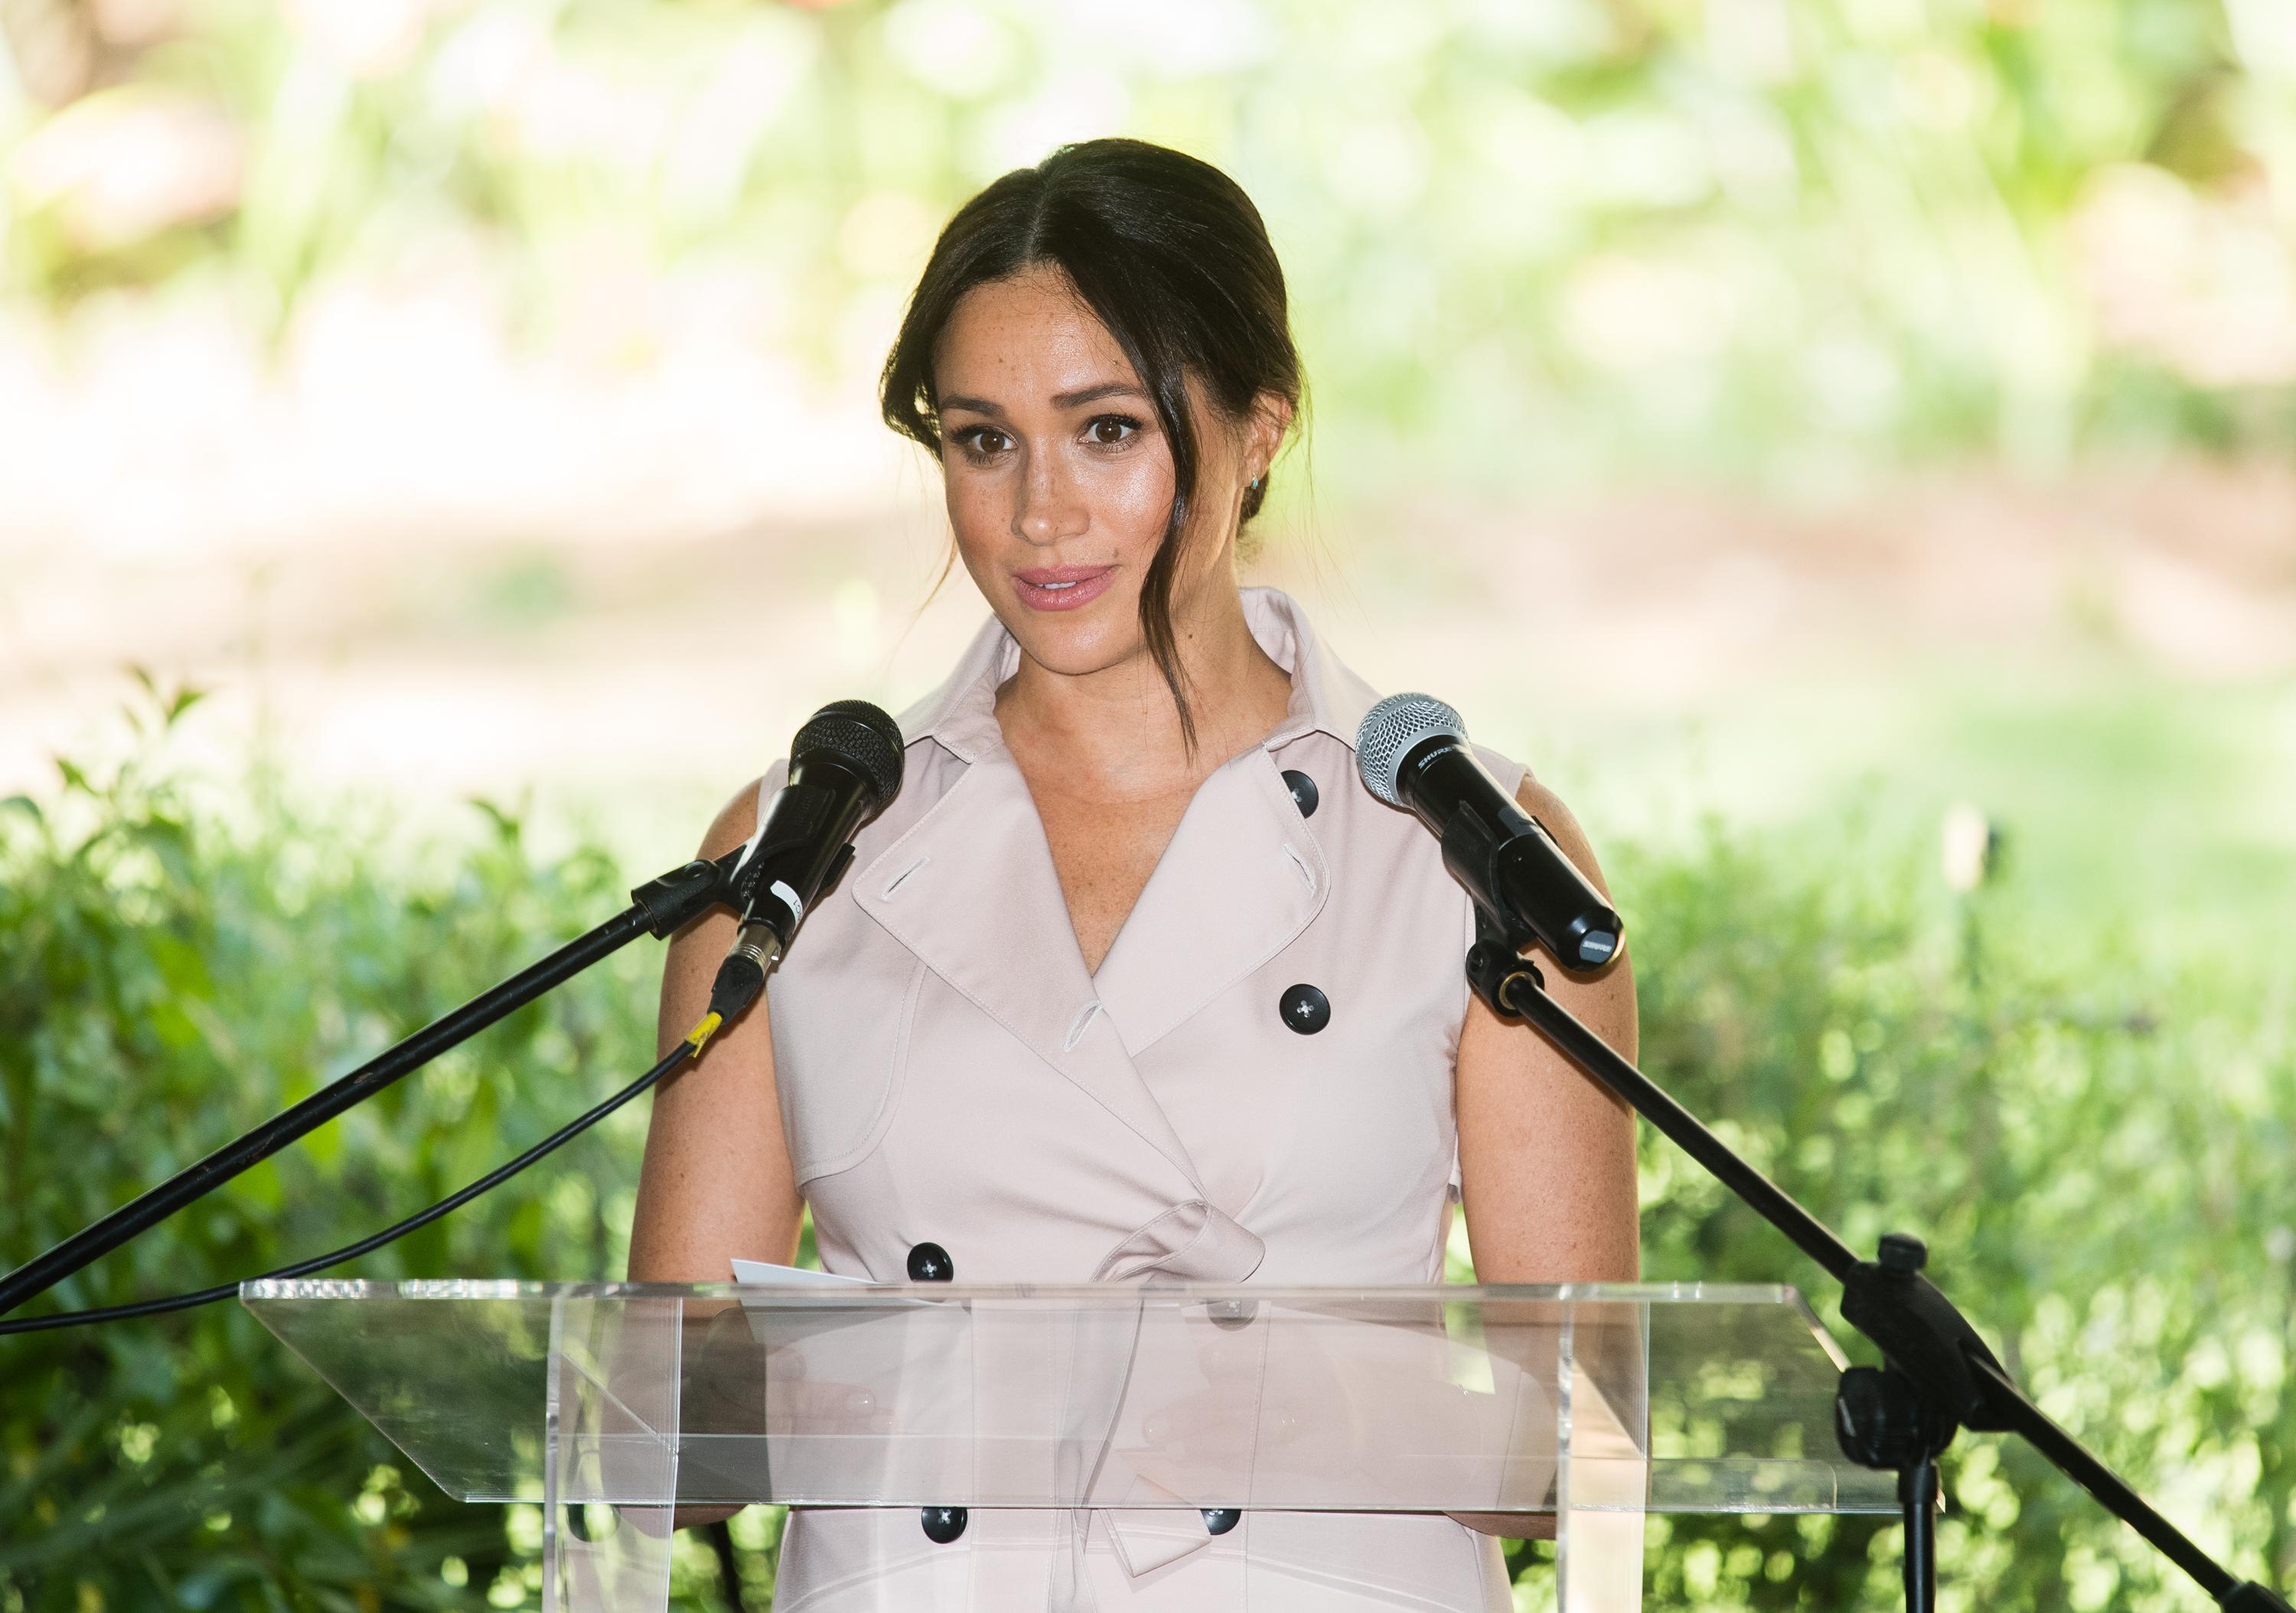 Meghan Markle says 'I know what it's like to feel voiceless' as she encourages women to vote in presidential election